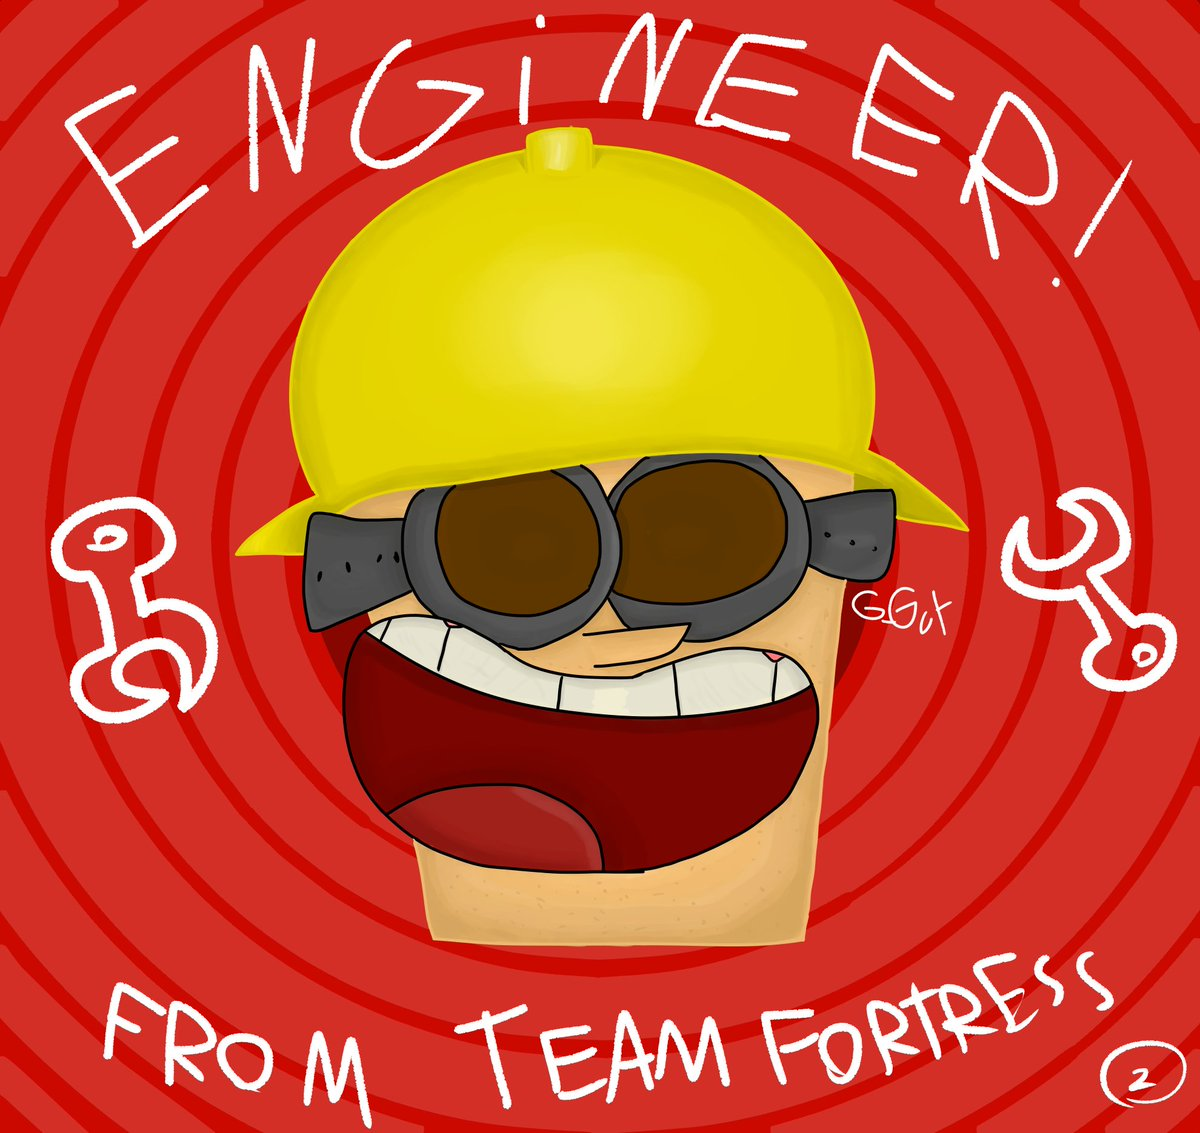 The Engineer is Engi-here @TeamFortress pic.twitter.com/Qr1RegLmFp